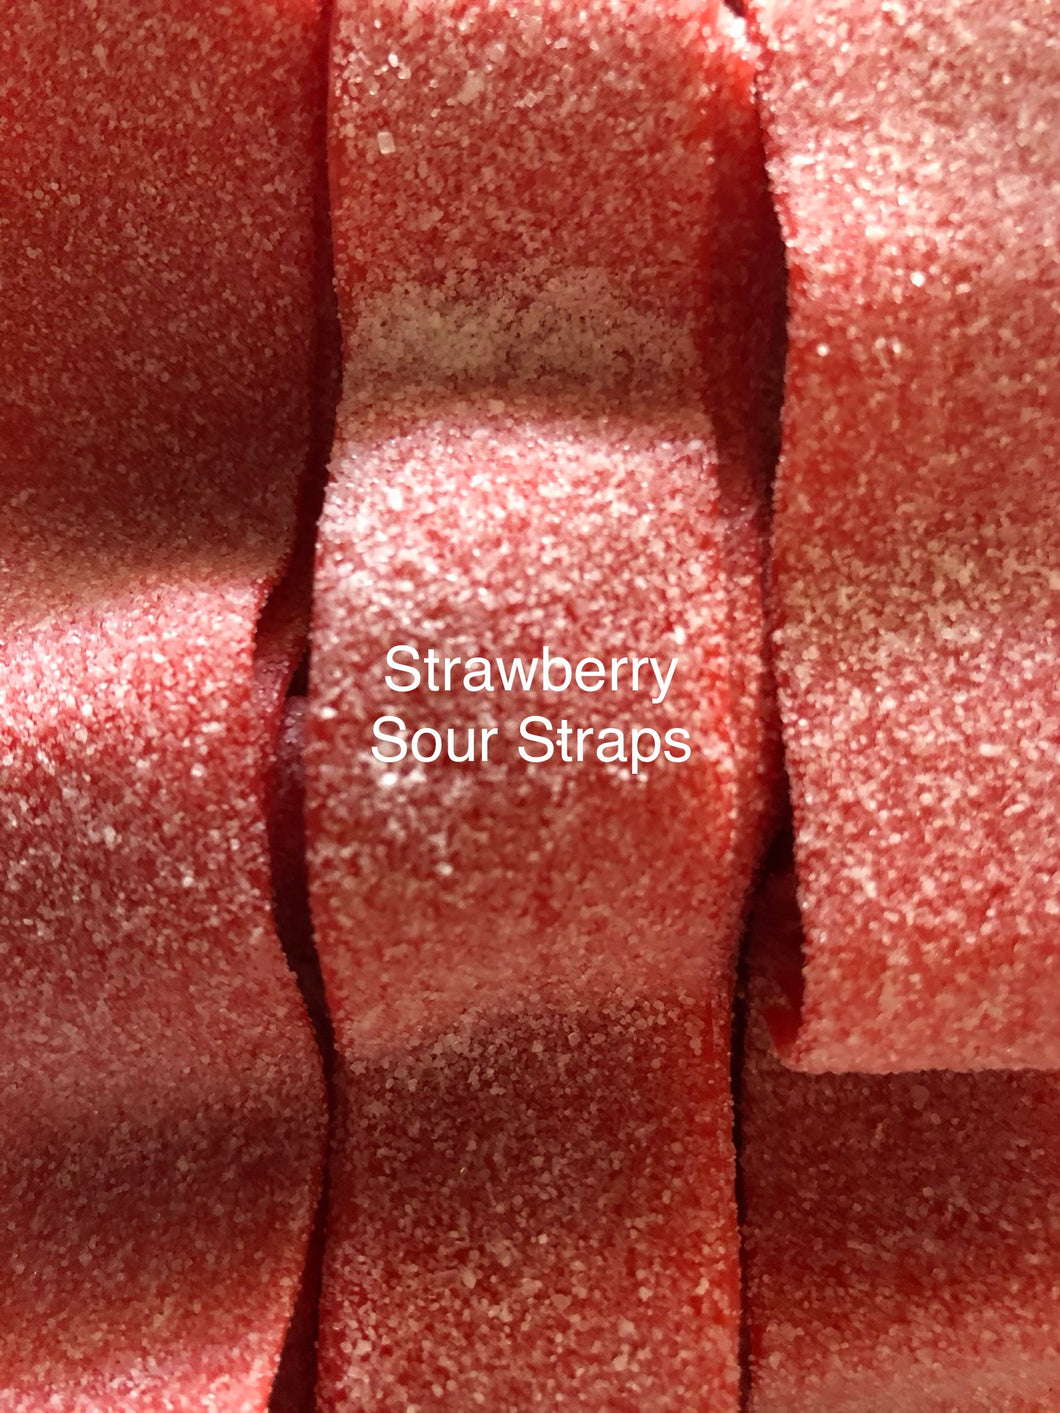 Strawberry Sour Straps